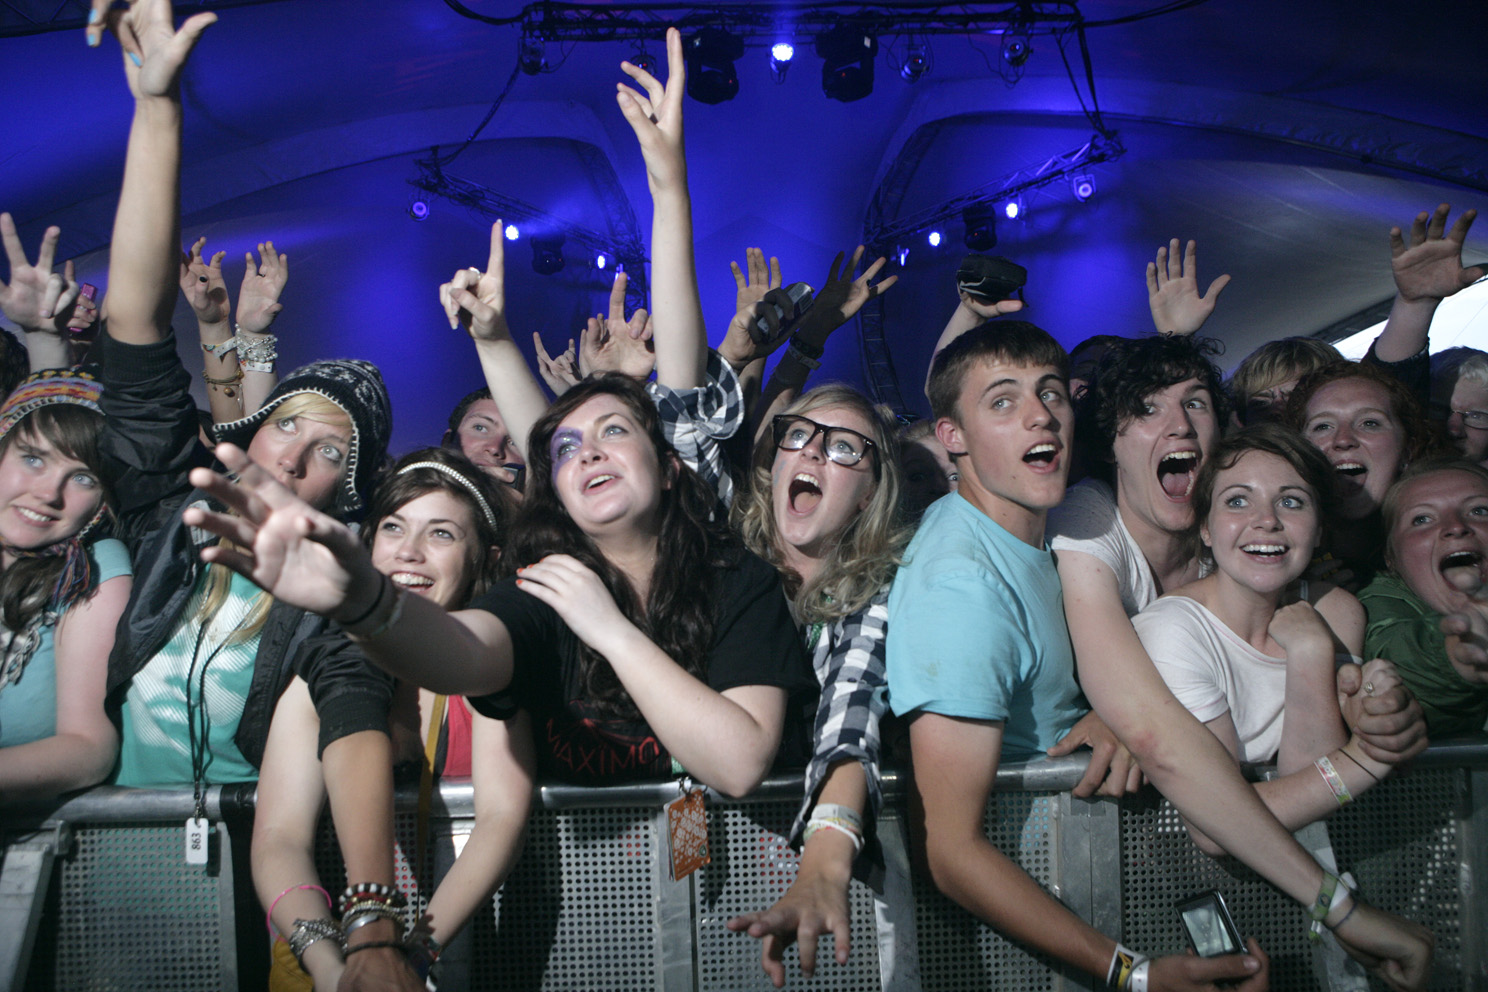 Fans at Ireland's biggest music festival